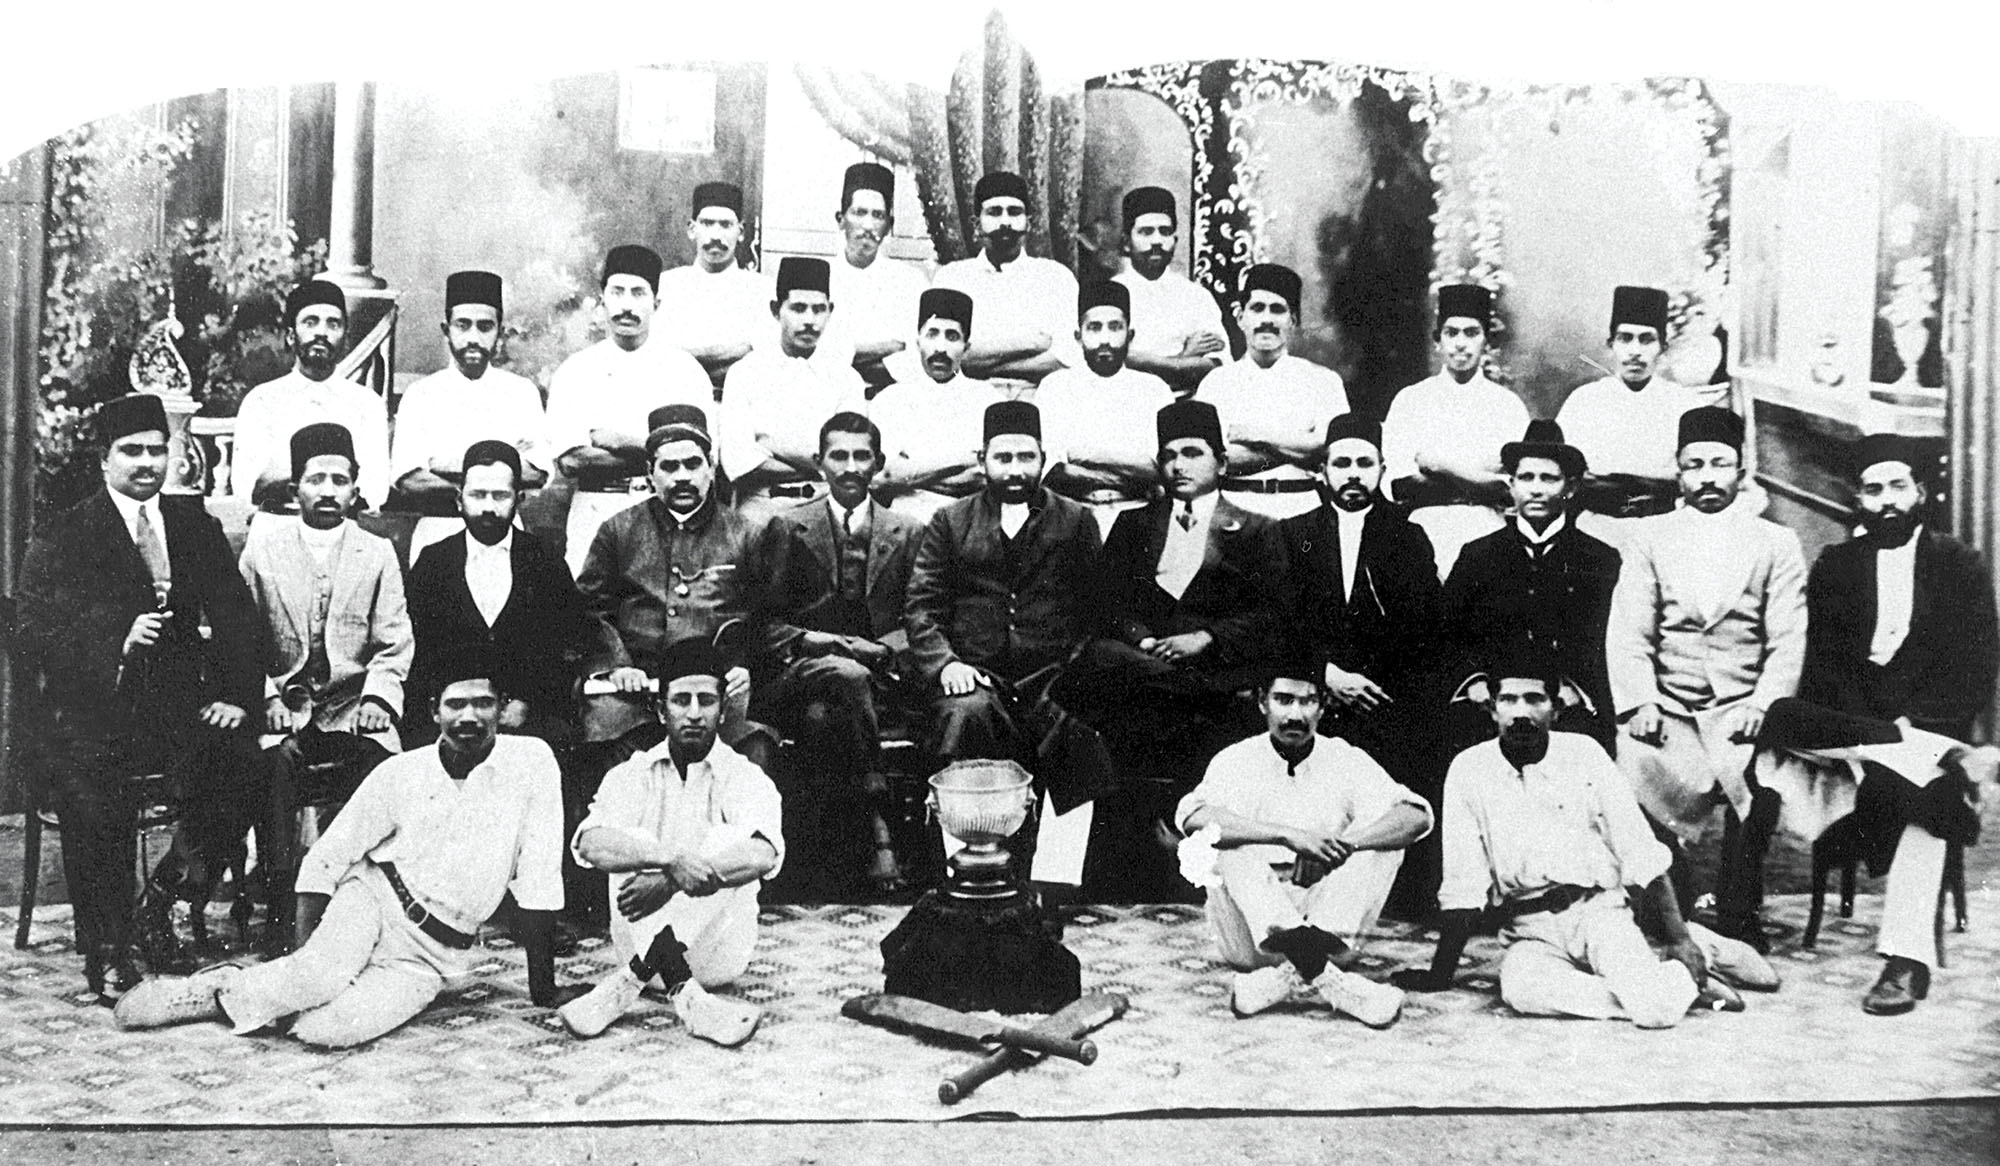 Gandhi isn't exactly known for his abilities as a sportsman. Yet, here he is with the Grayville Cricket Club in Durban, South Africa. Cricket featured again in Gandhi's life during his career as a politician in India, while World War II was raging on. There was a cricket tournament organised in Bombay city at the time called The Pentangular, which featured teams representing communities: Europeans, Hindus, Muslims, Parsis and the Rest (Indian Christians mainly, but also Buddhists and Jews). Recognising the communal consciousness that the tournament was encouraging, Gandhi moved in to stop it in 1940. In 1946, the Pentangular was abandoned and the Ranji trophy, played between provinces, took its place as India's premier domestic cricket tournament. Credit: Alamy